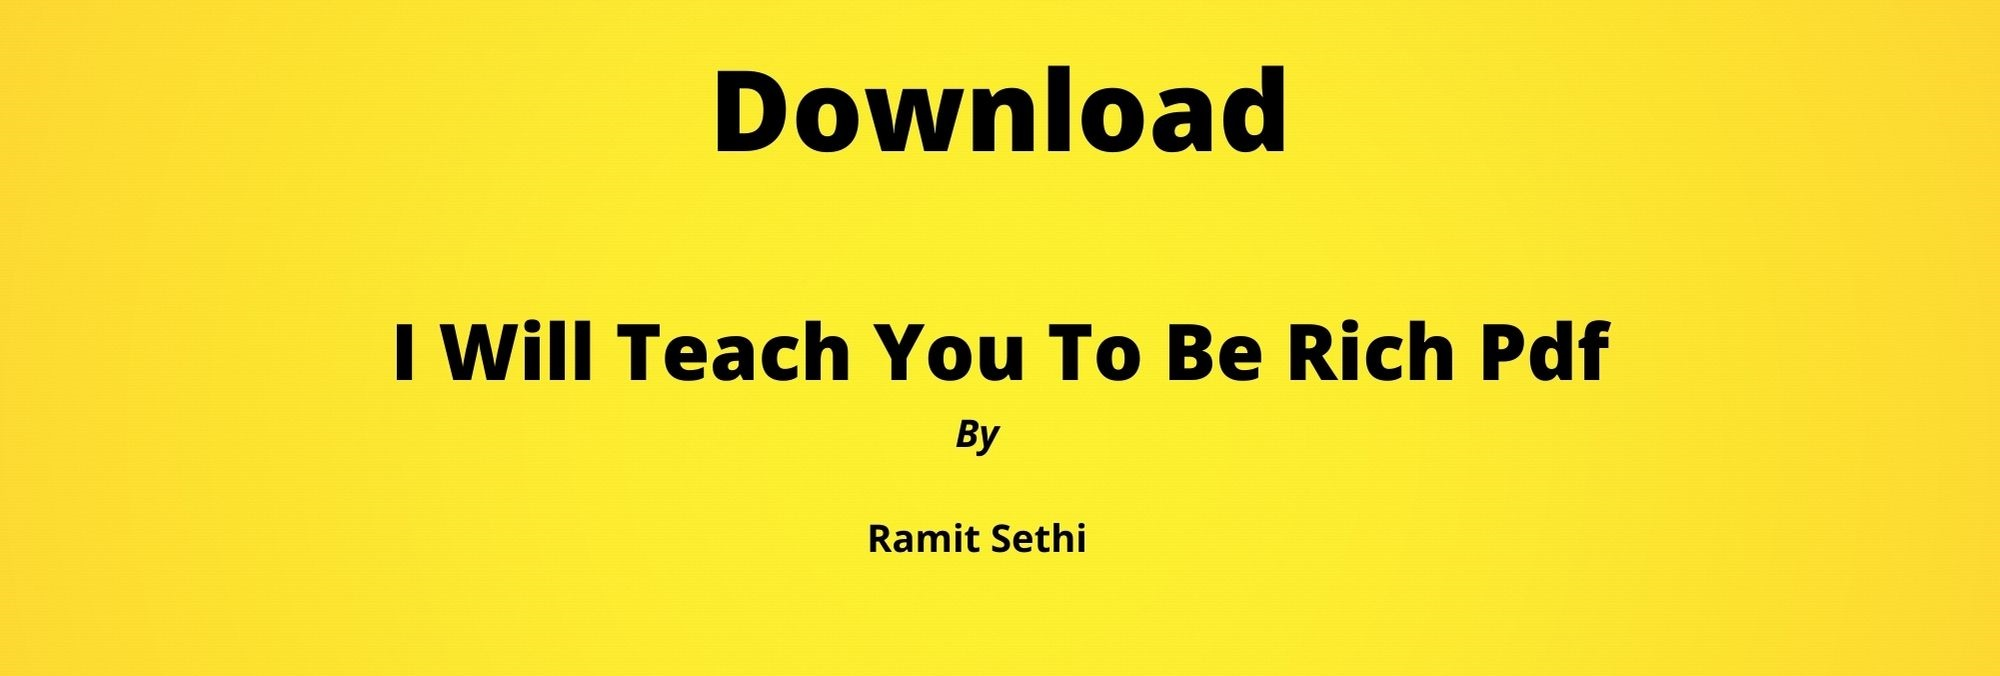 Download I Will Teach You to Be Rich Pdf